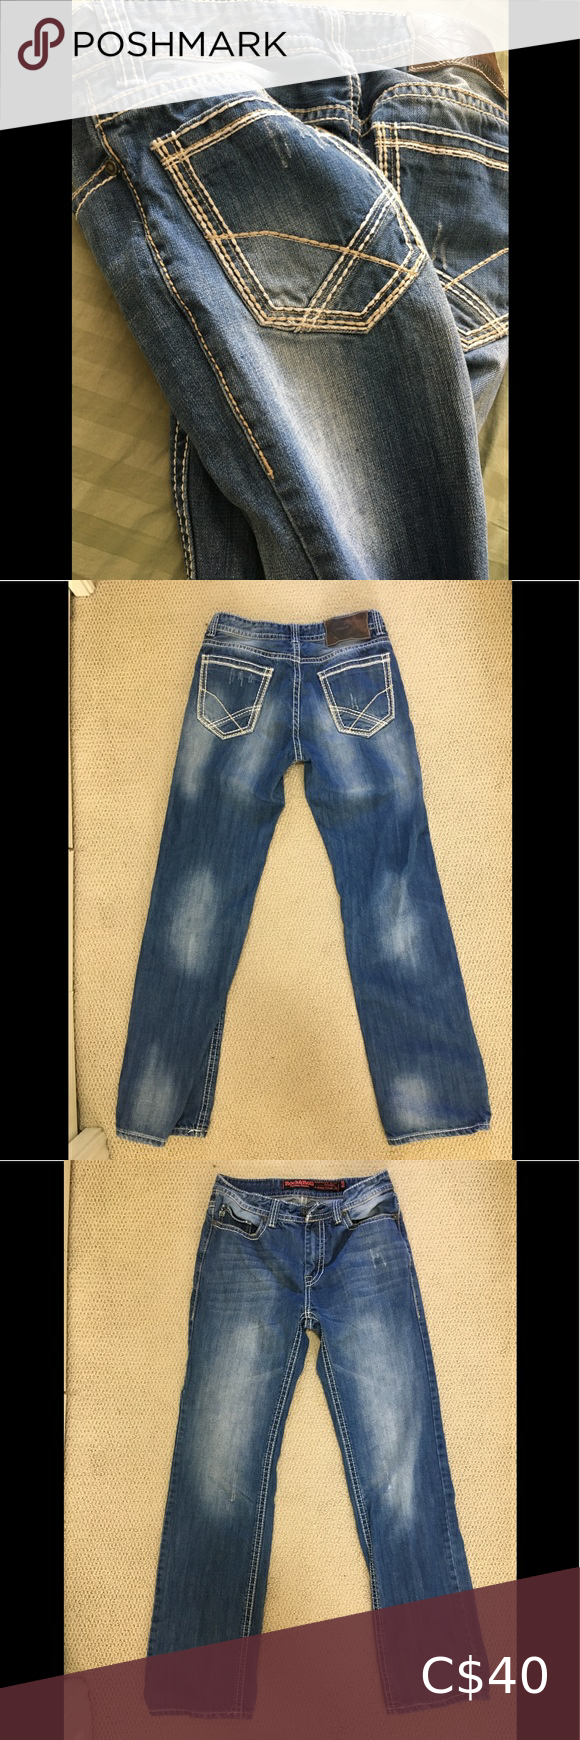 Rock And Roll Cowboy Men's Jeans Size 31 X36